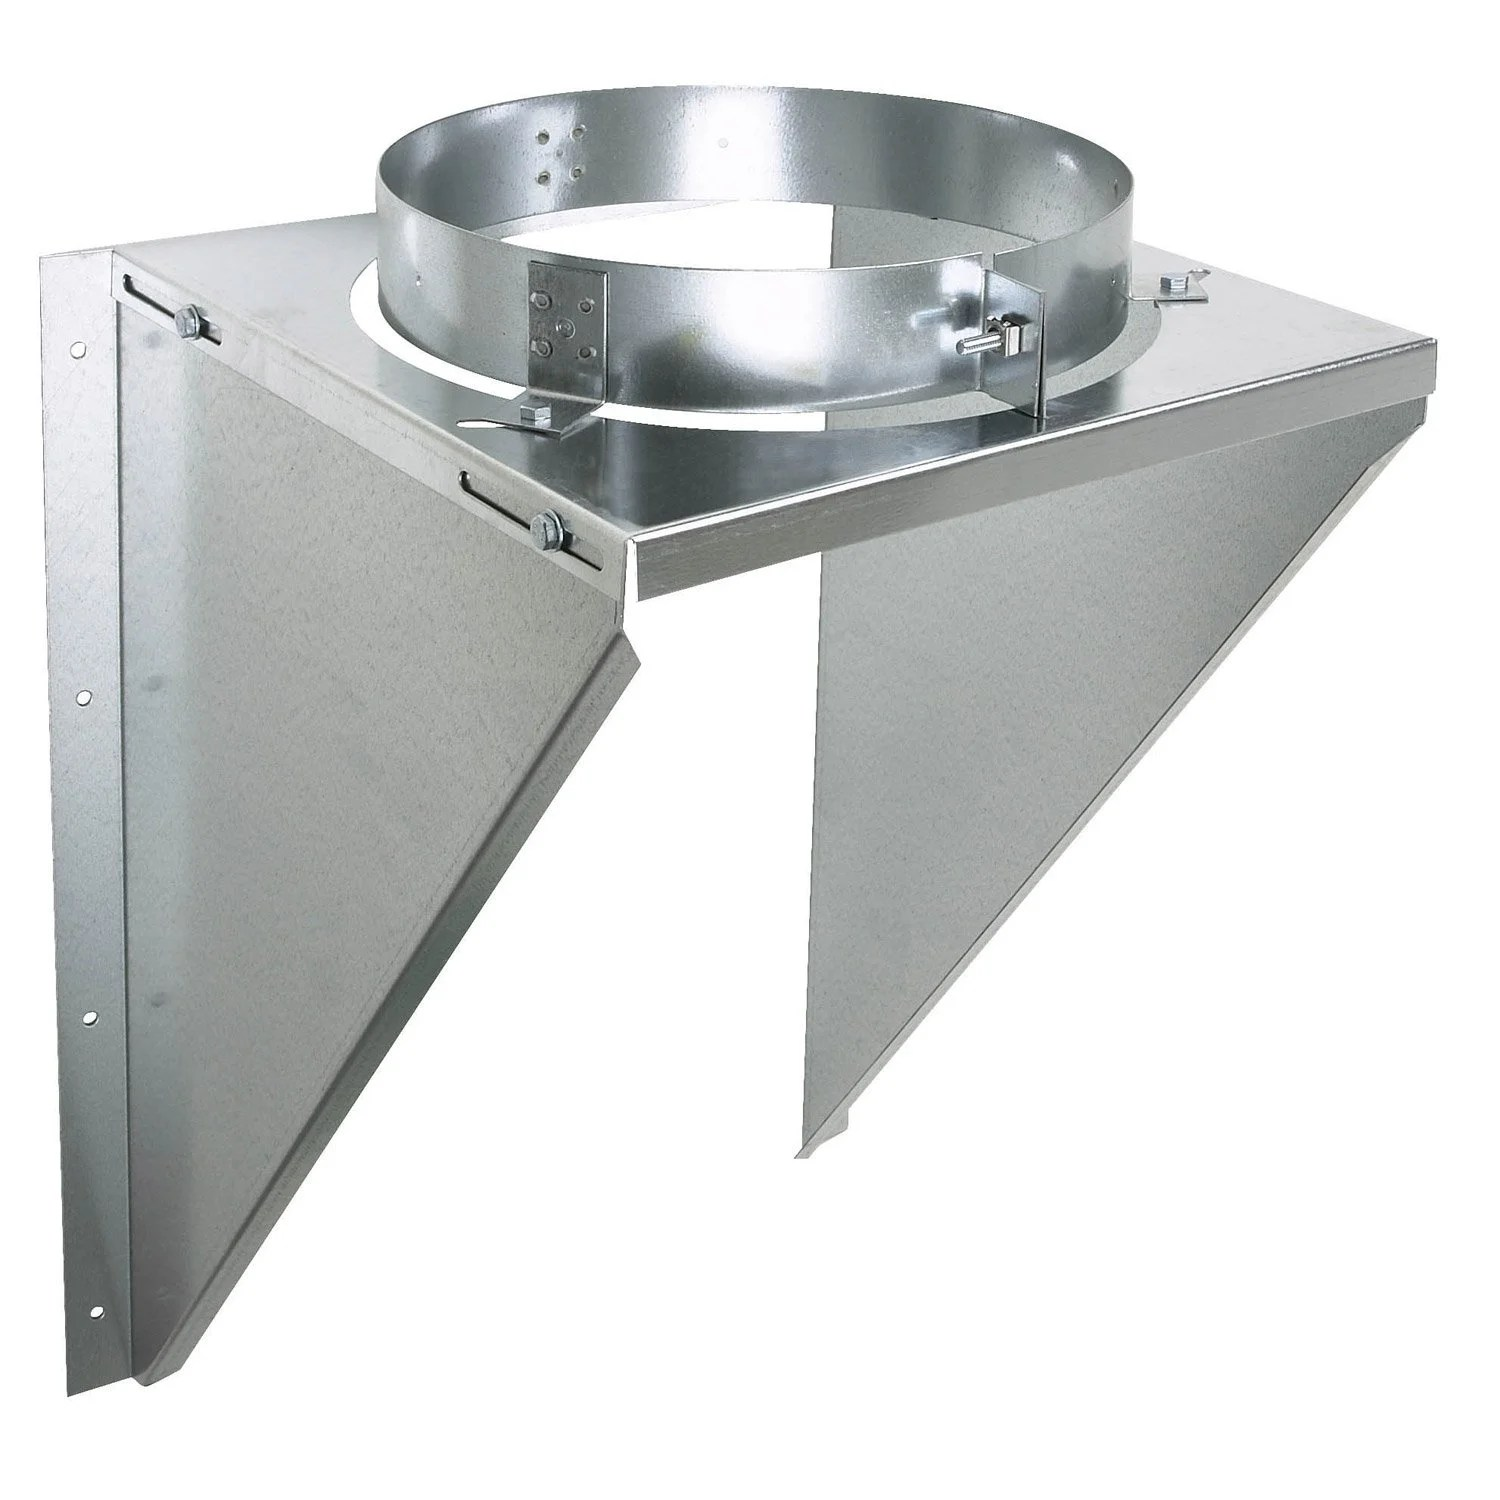 Tubage Cheminee Quel Diametre Support Mural Inox Galva Sm 150 Poujoulat D 150 Mm